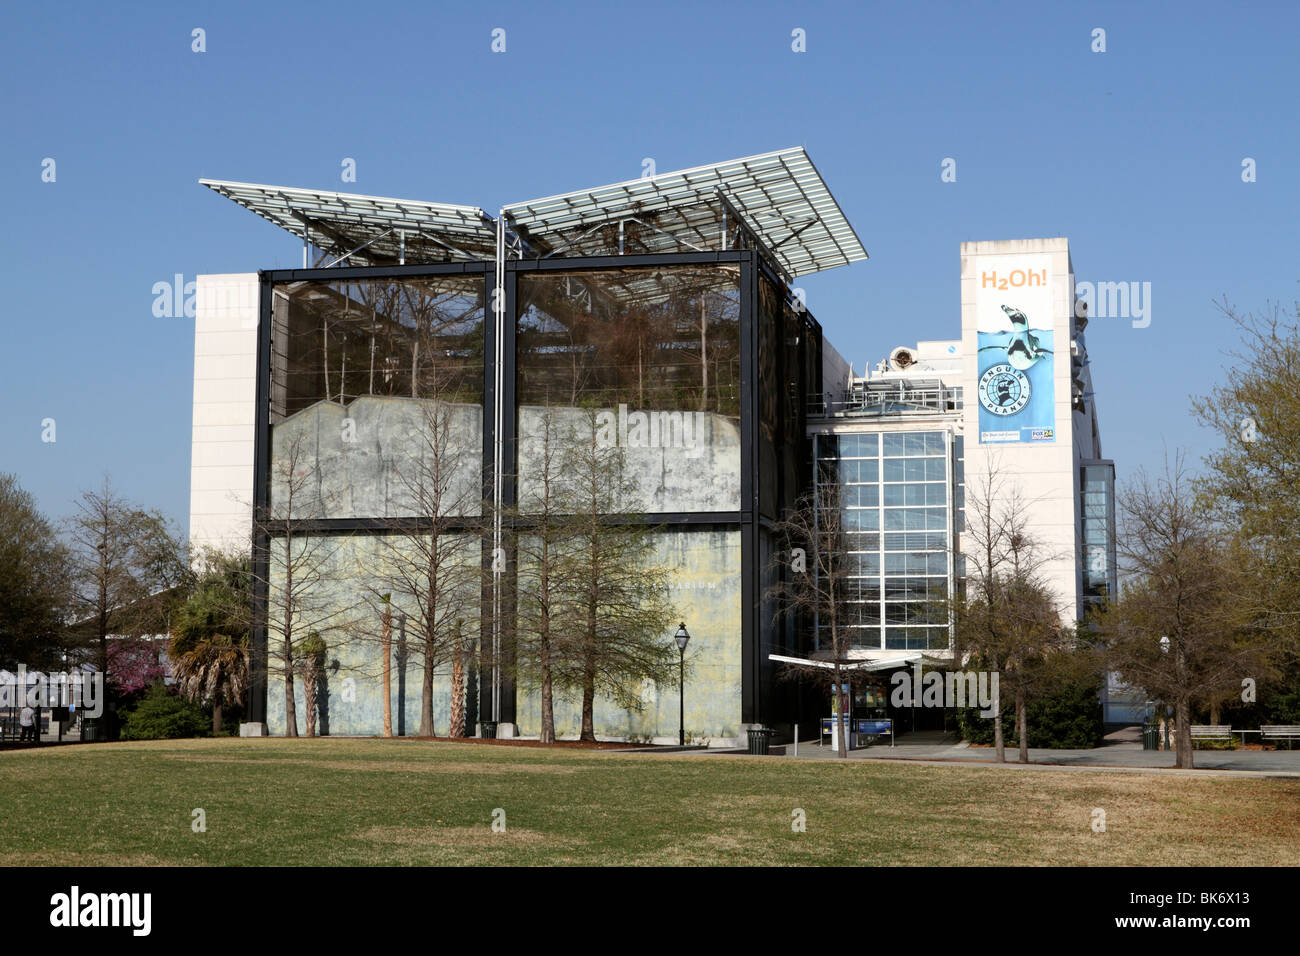 The South Carolina Aquarium, Charleston, SC, USA. - Stock Image